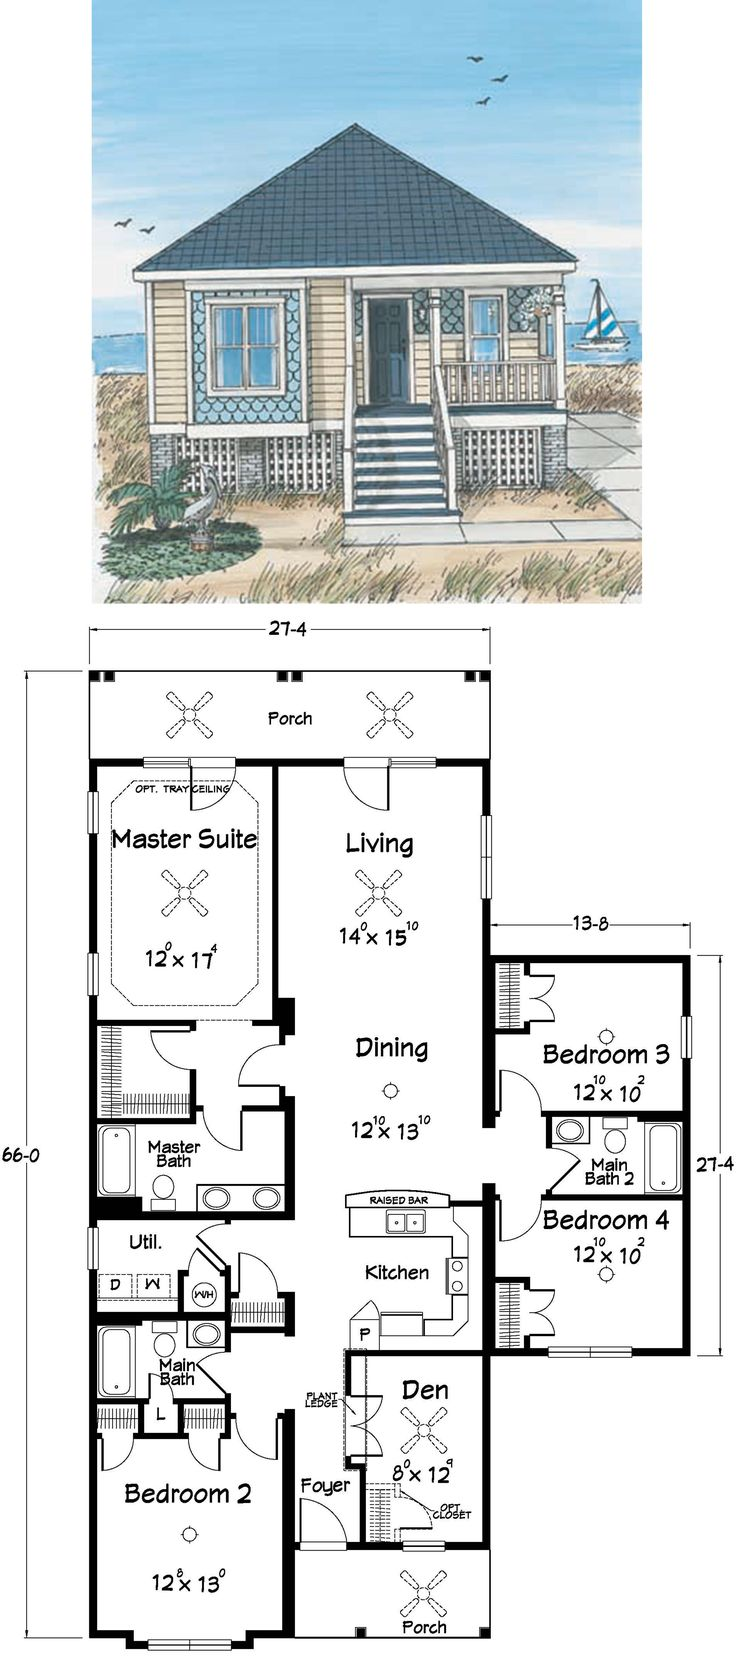 Beach House Plans, I would add an office area next to bedroom 3 and a creative studio next to room 4,  as well as having the porch going around the house